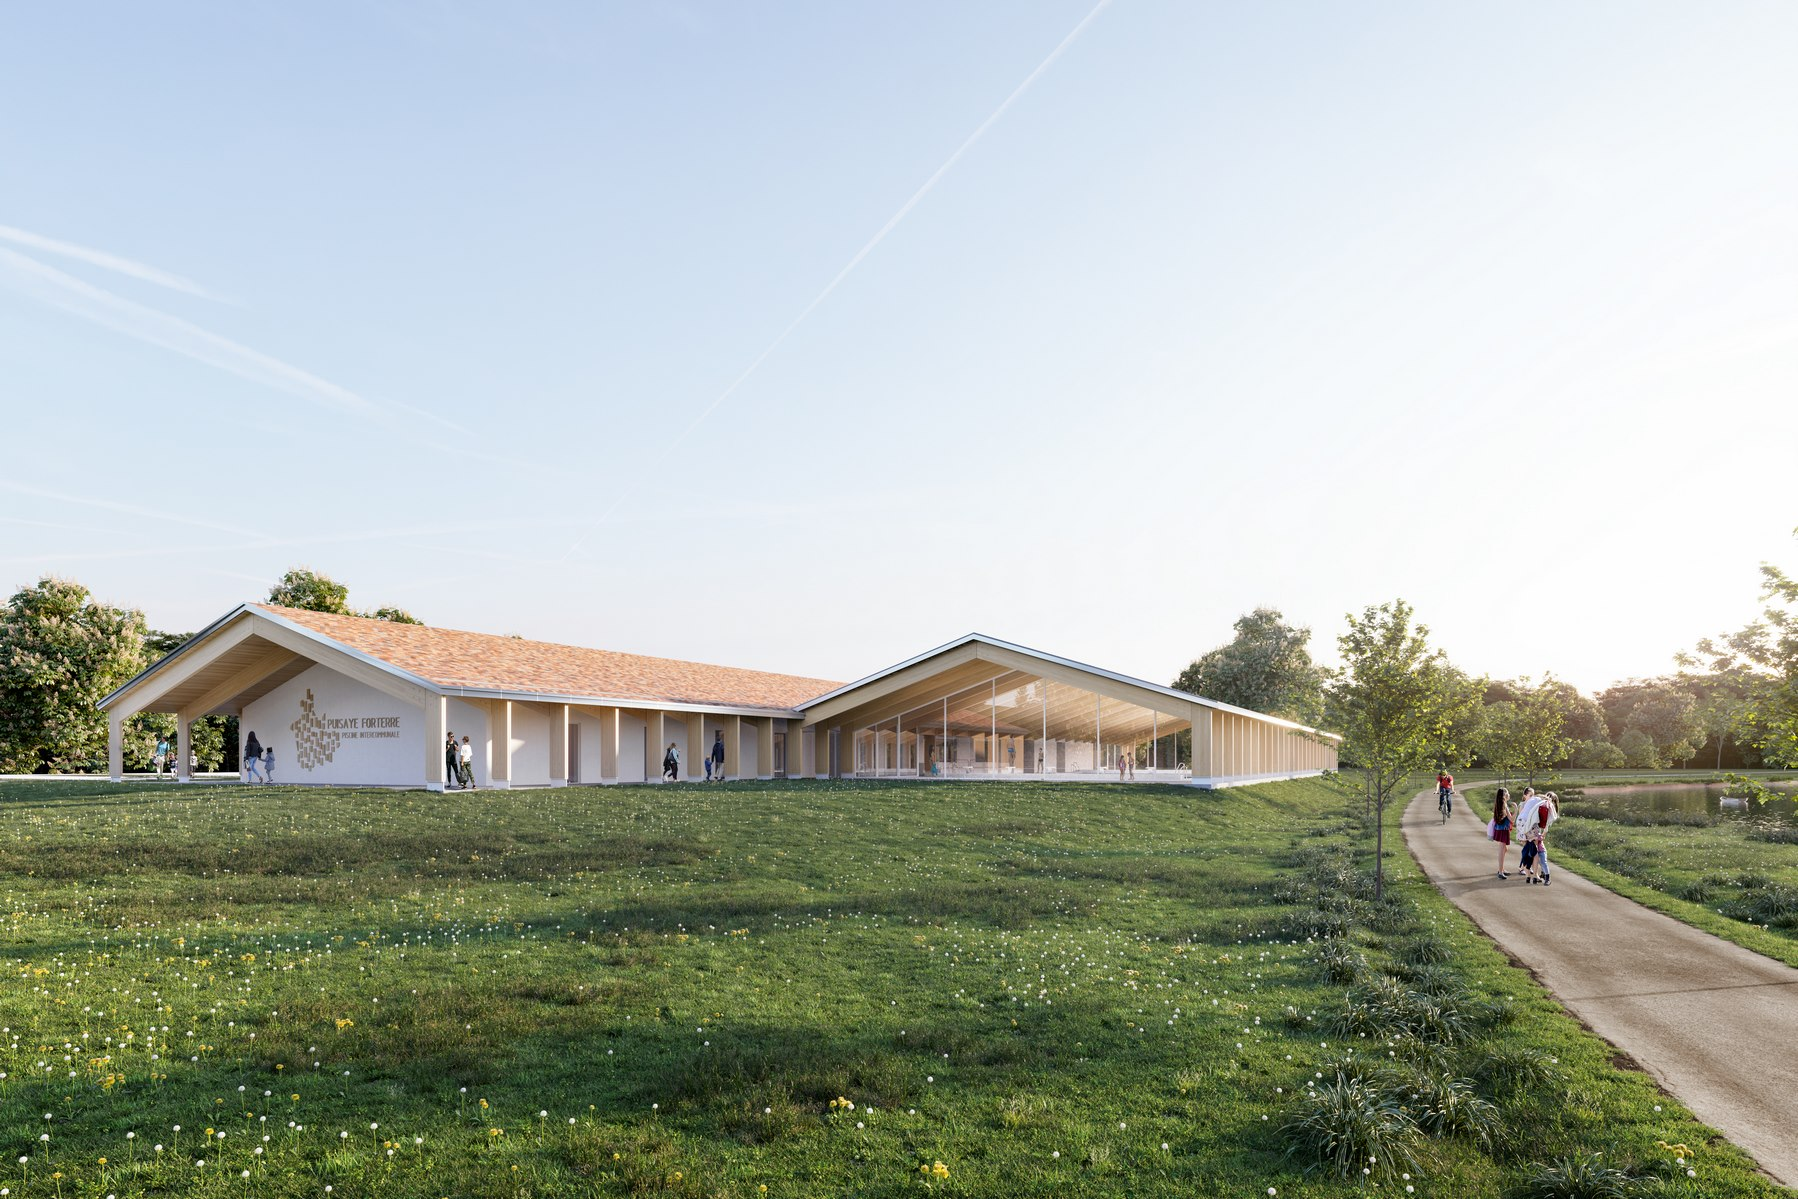 Piscine intercommunale de Toucy - Z Architecture